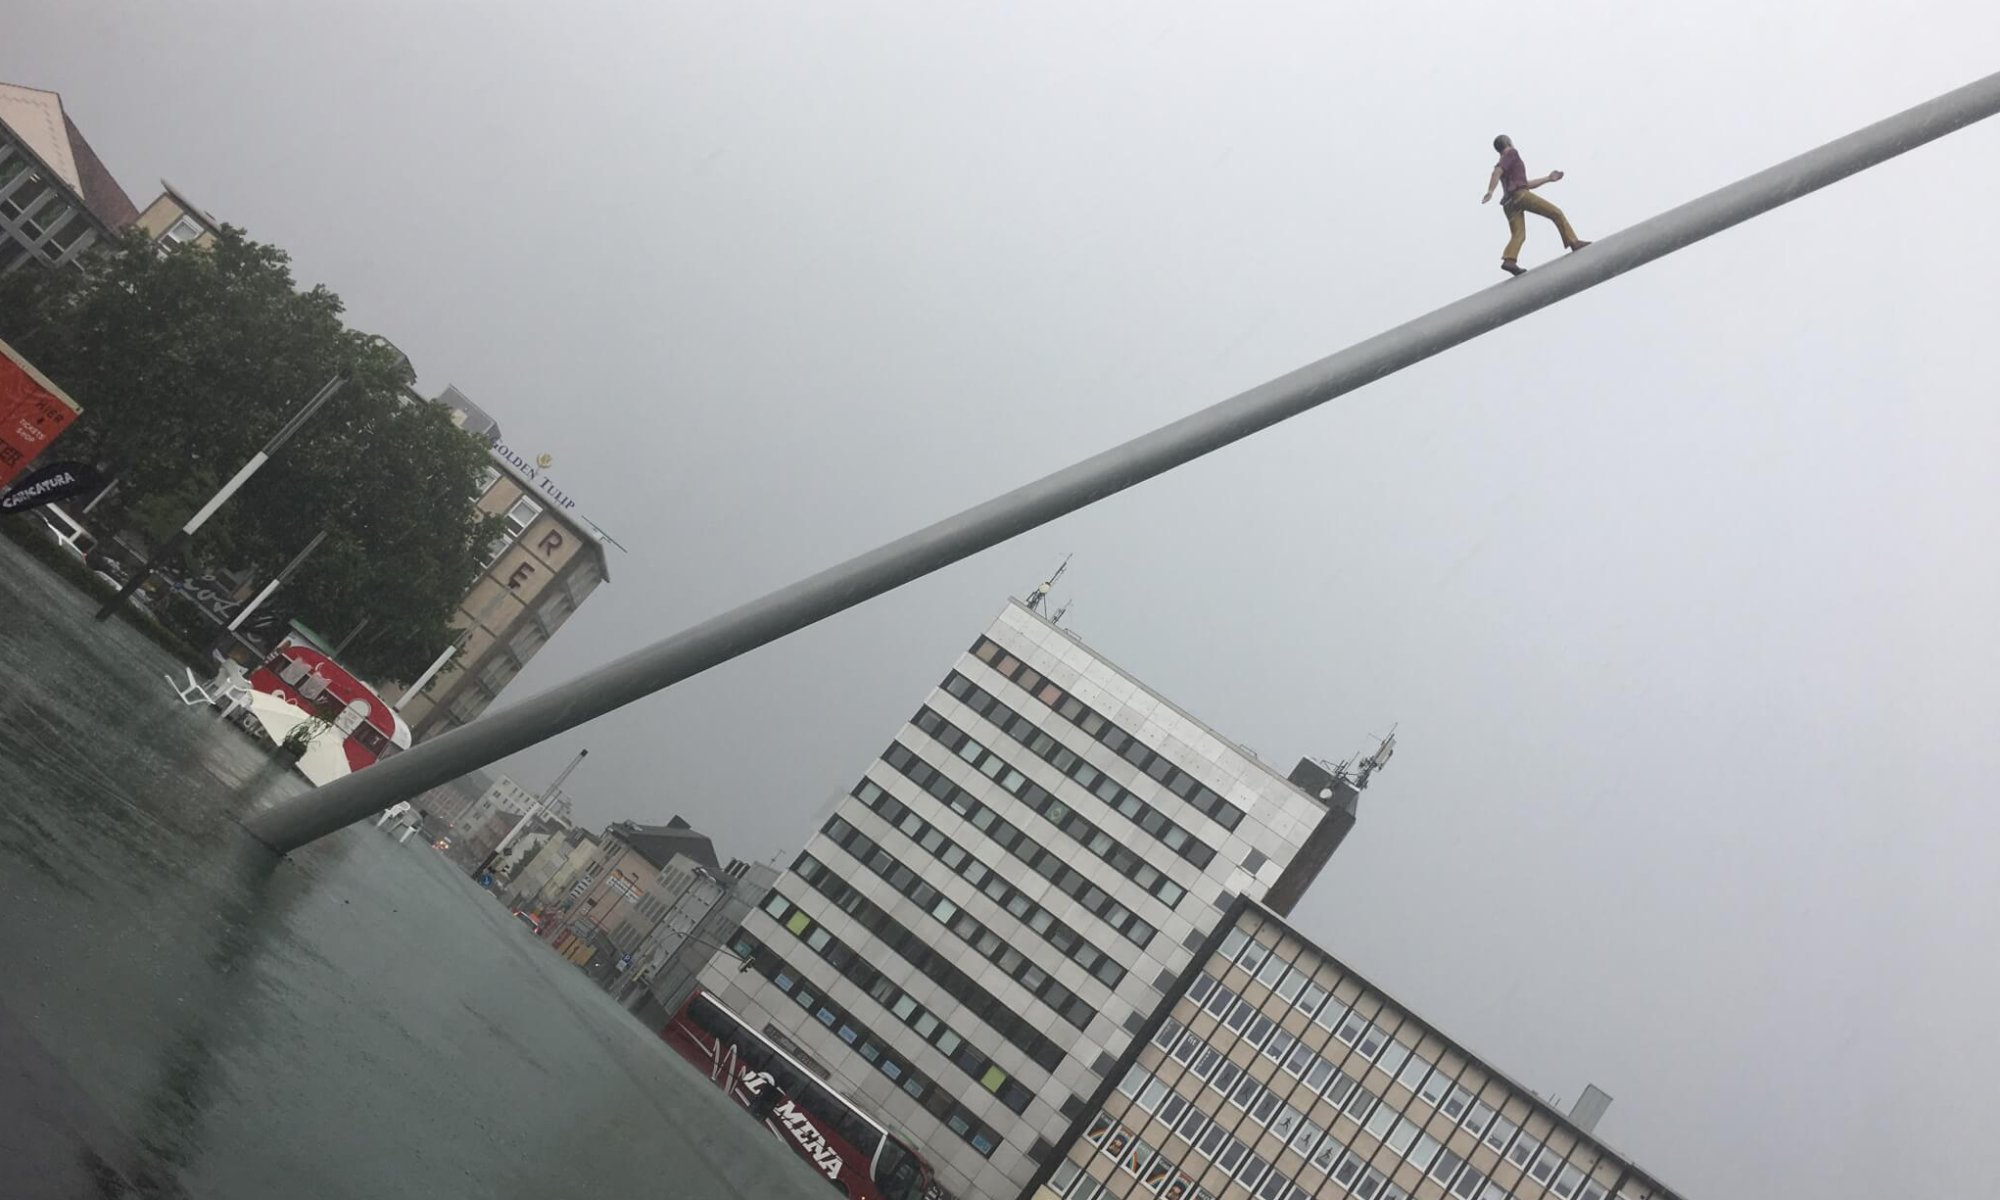 Himmelsstürmer, Man walking to the sky, Kassel